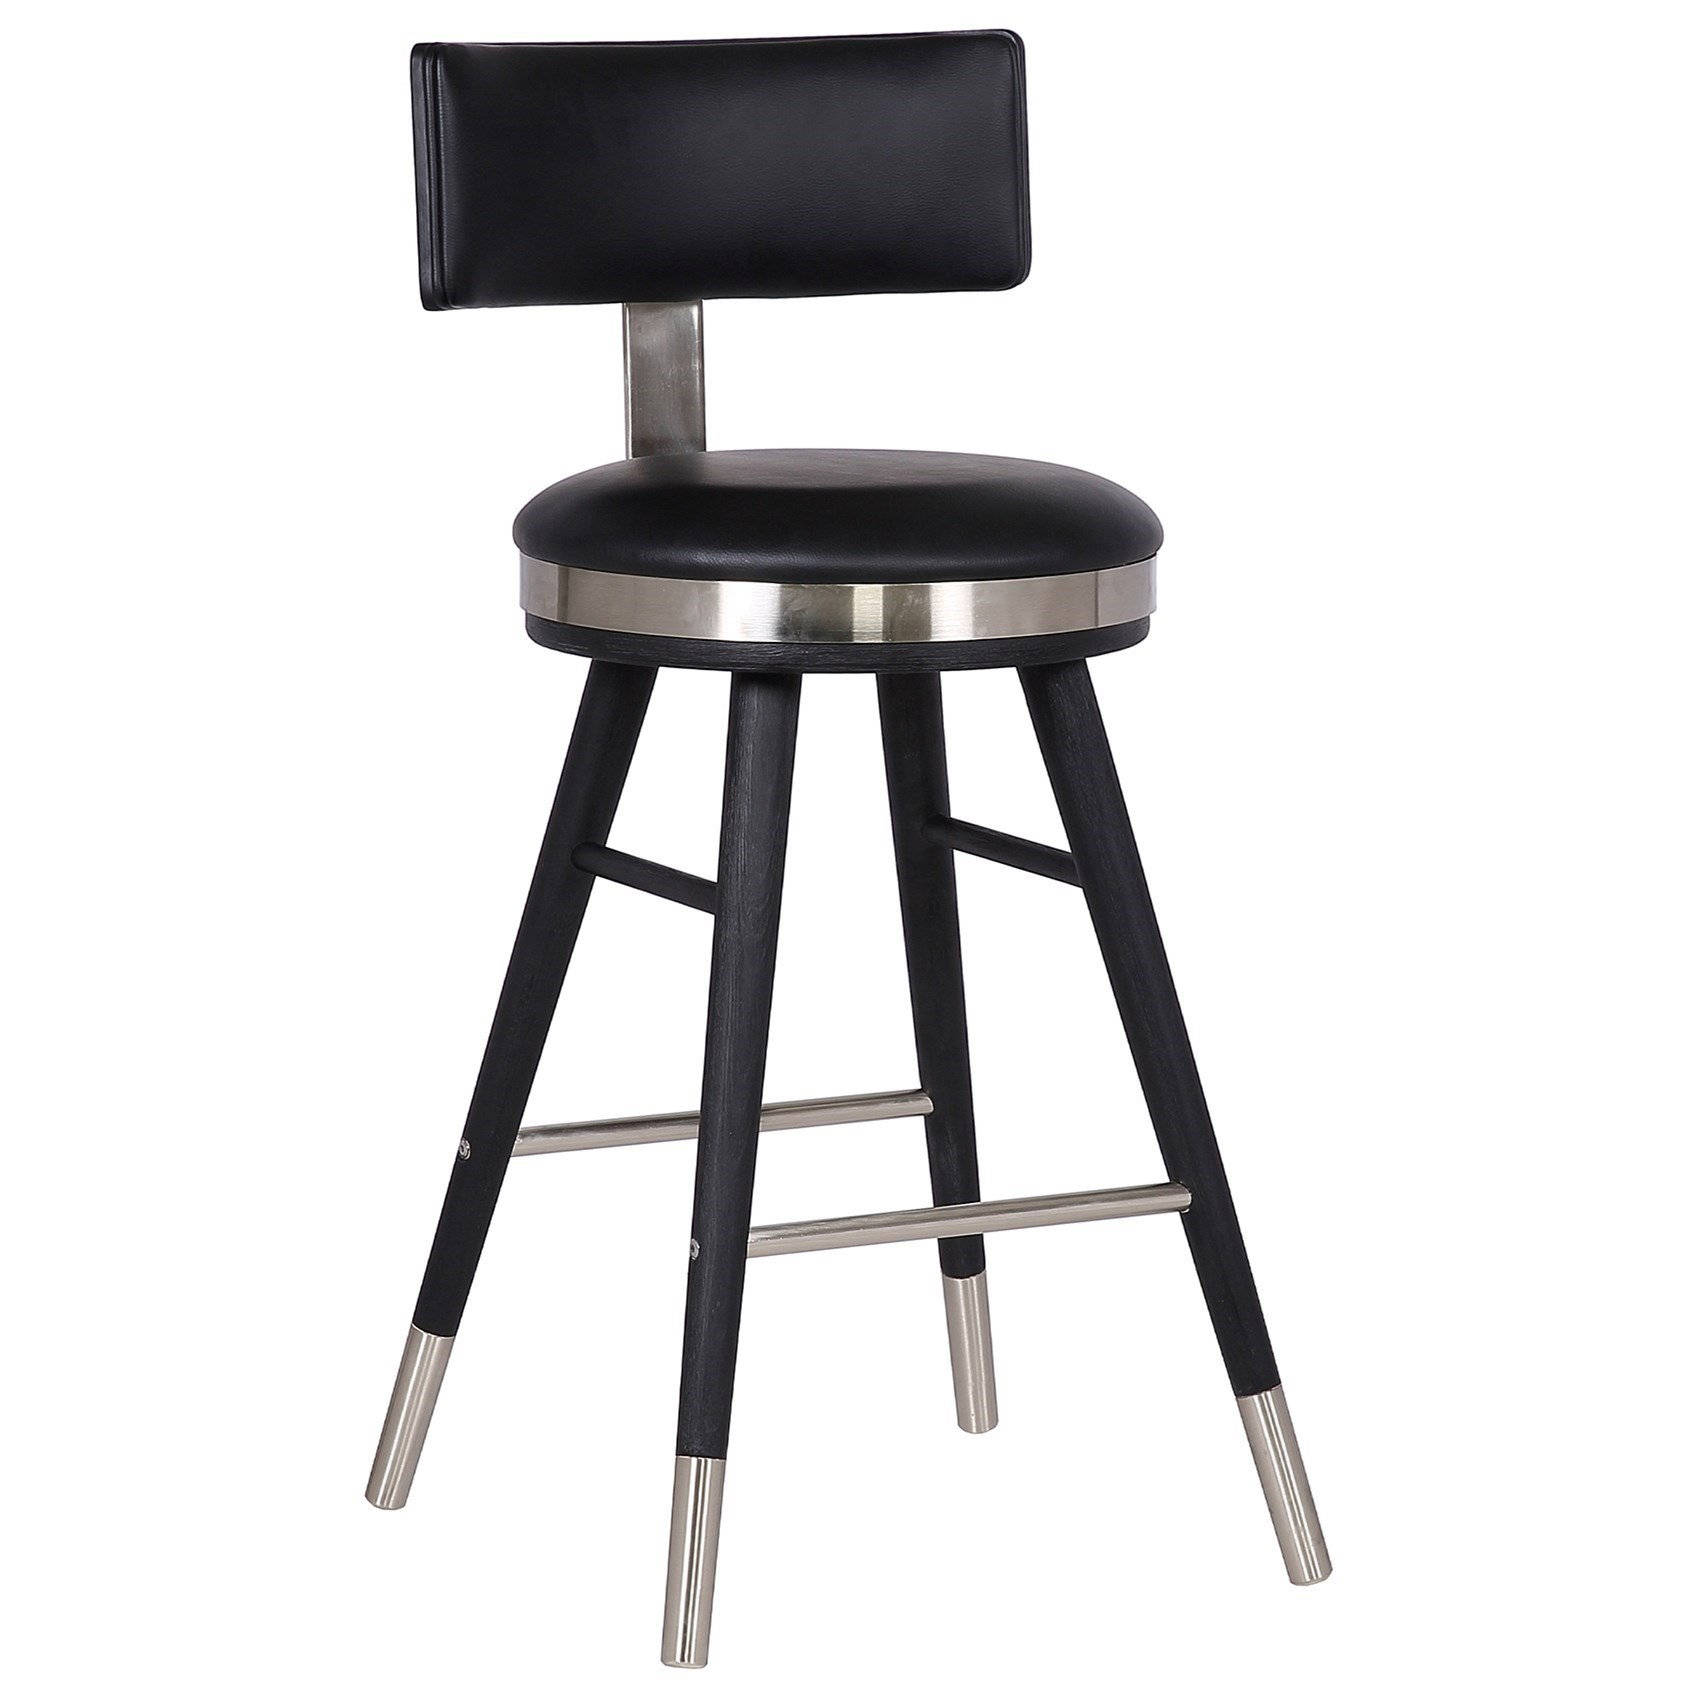 "Grace Modern 26"" Black Faux Leather Bar Stool by Armen Living at Michael Alan Furniture & Design"